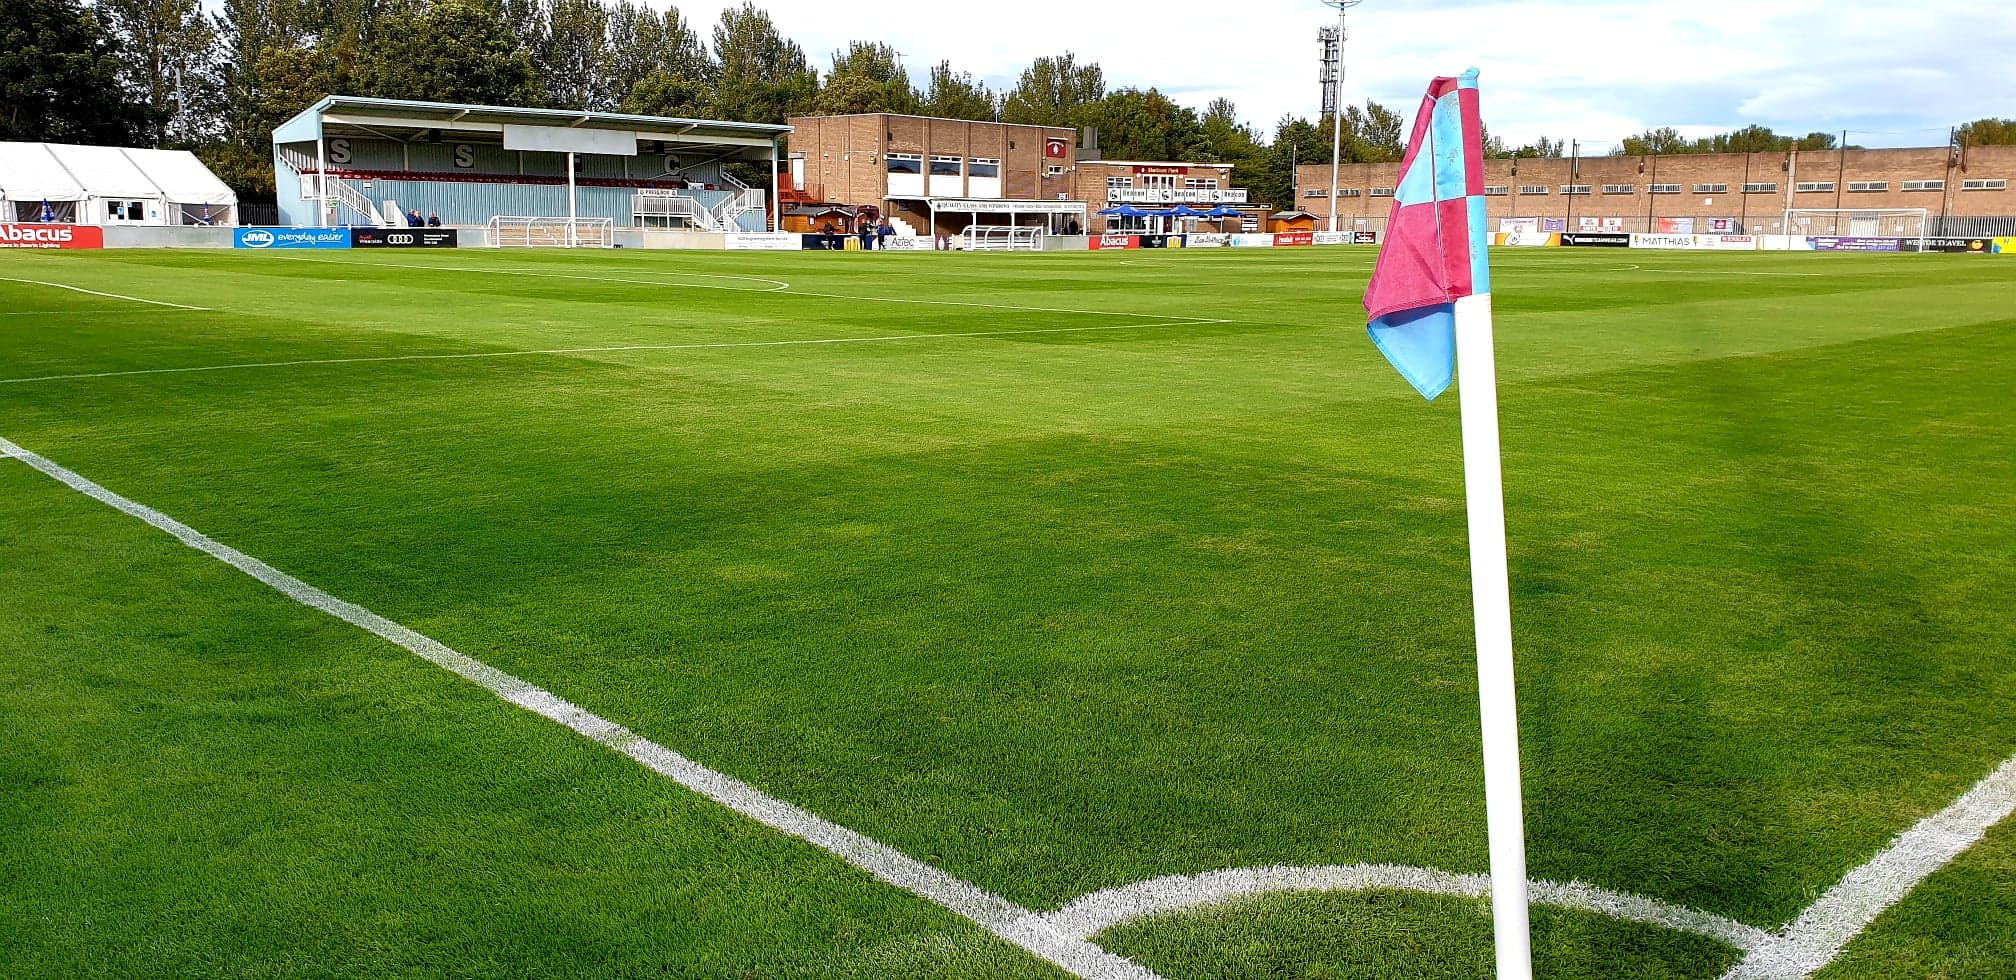 South Shields vs Mickleover: Guidance for supporters